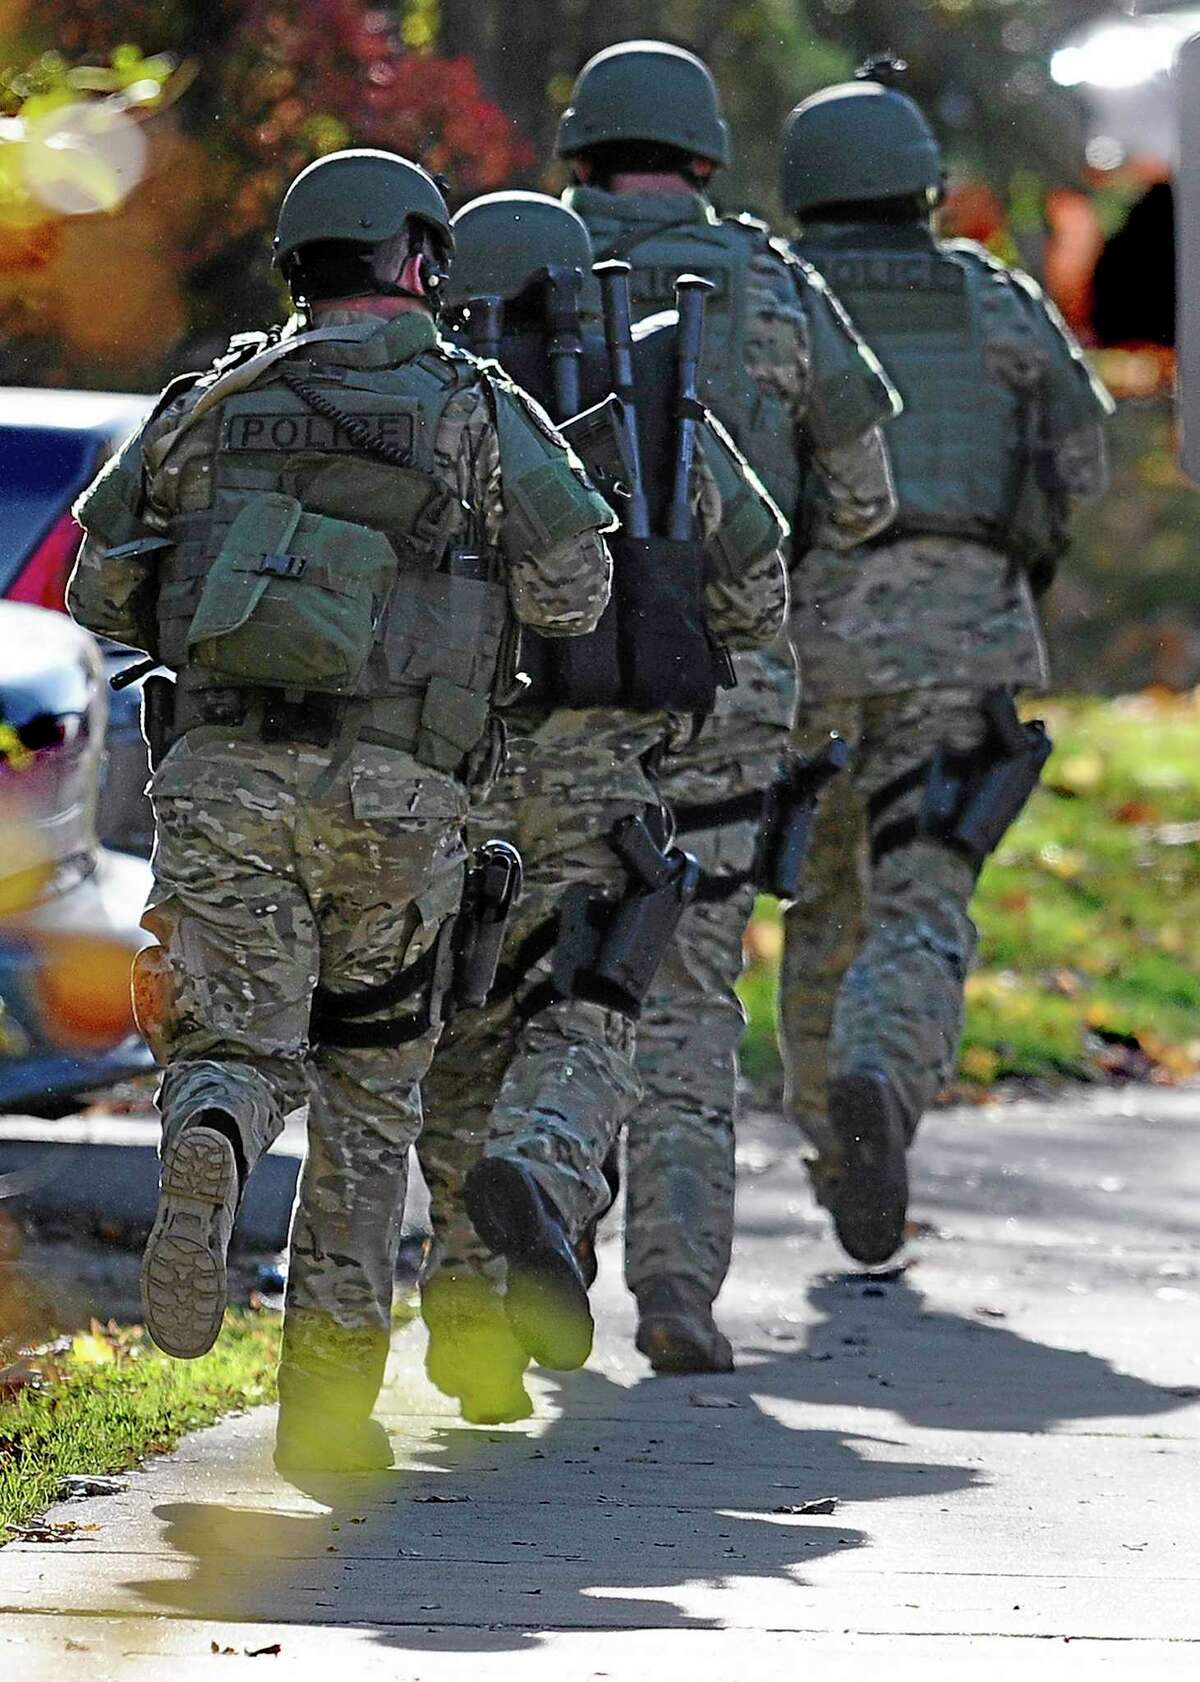 """SWAT move in a line on the campus of Central Connecticut State University, Monday, Nov. 4, 2013, in New Britain, Conn. An armed man was spotted on the campus of Central Connecticut State University, prompting a schoolwide lockdown and warnings for students to stay away from windows as police SWAT teams swarmed the area. University spokesman Mark McLaughlin said, """"Somebody was seen either with a gun or was thought to have a gun."""" (AP Photo/Jessica Hill)"""